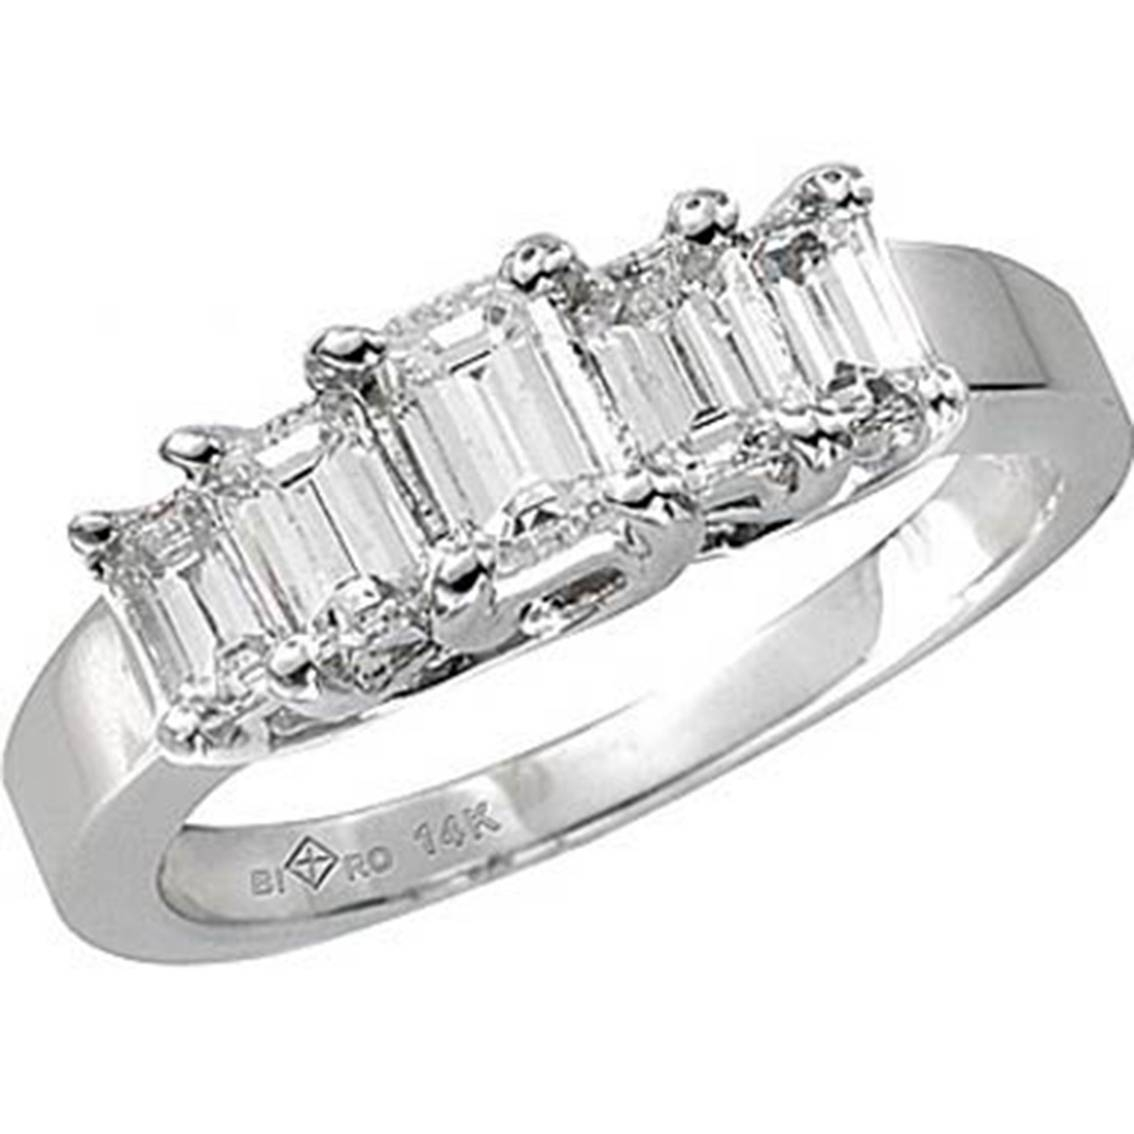 14K White Gold 1 Ctw Cindy Graduated 5 Stone Emerald Cut Diamond Intended For Most Popular 5 Stone Anniversary Rings (Gallery 3 of 25)